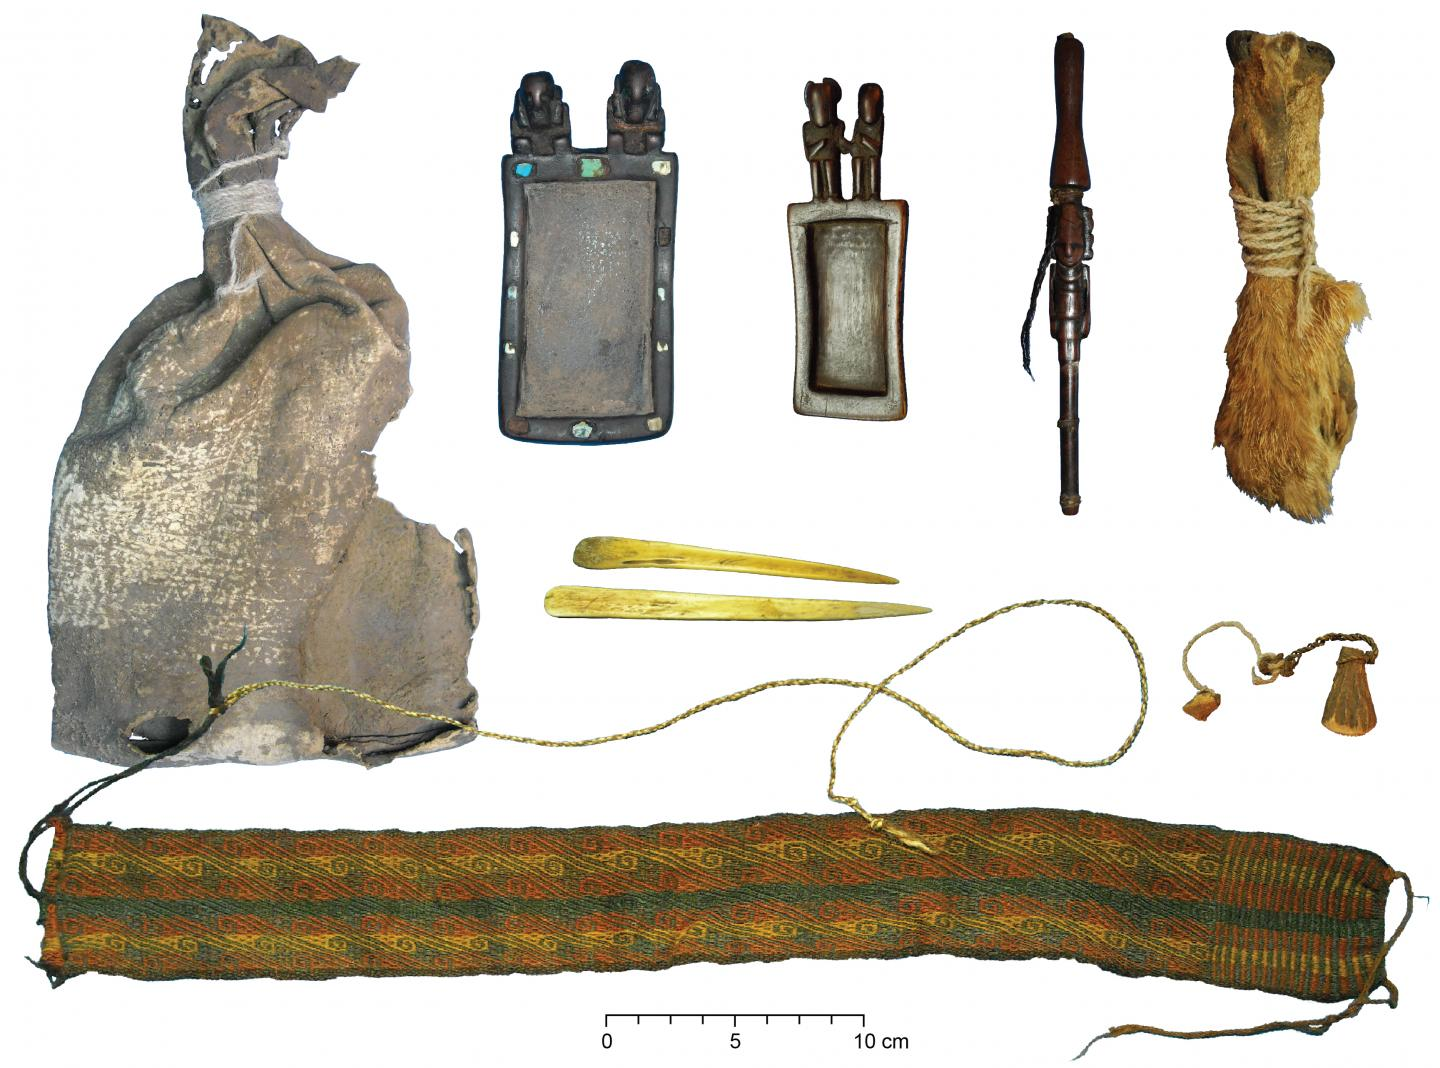 Drug Residues Detected on Ancient Ritual Bundle From Bolivia